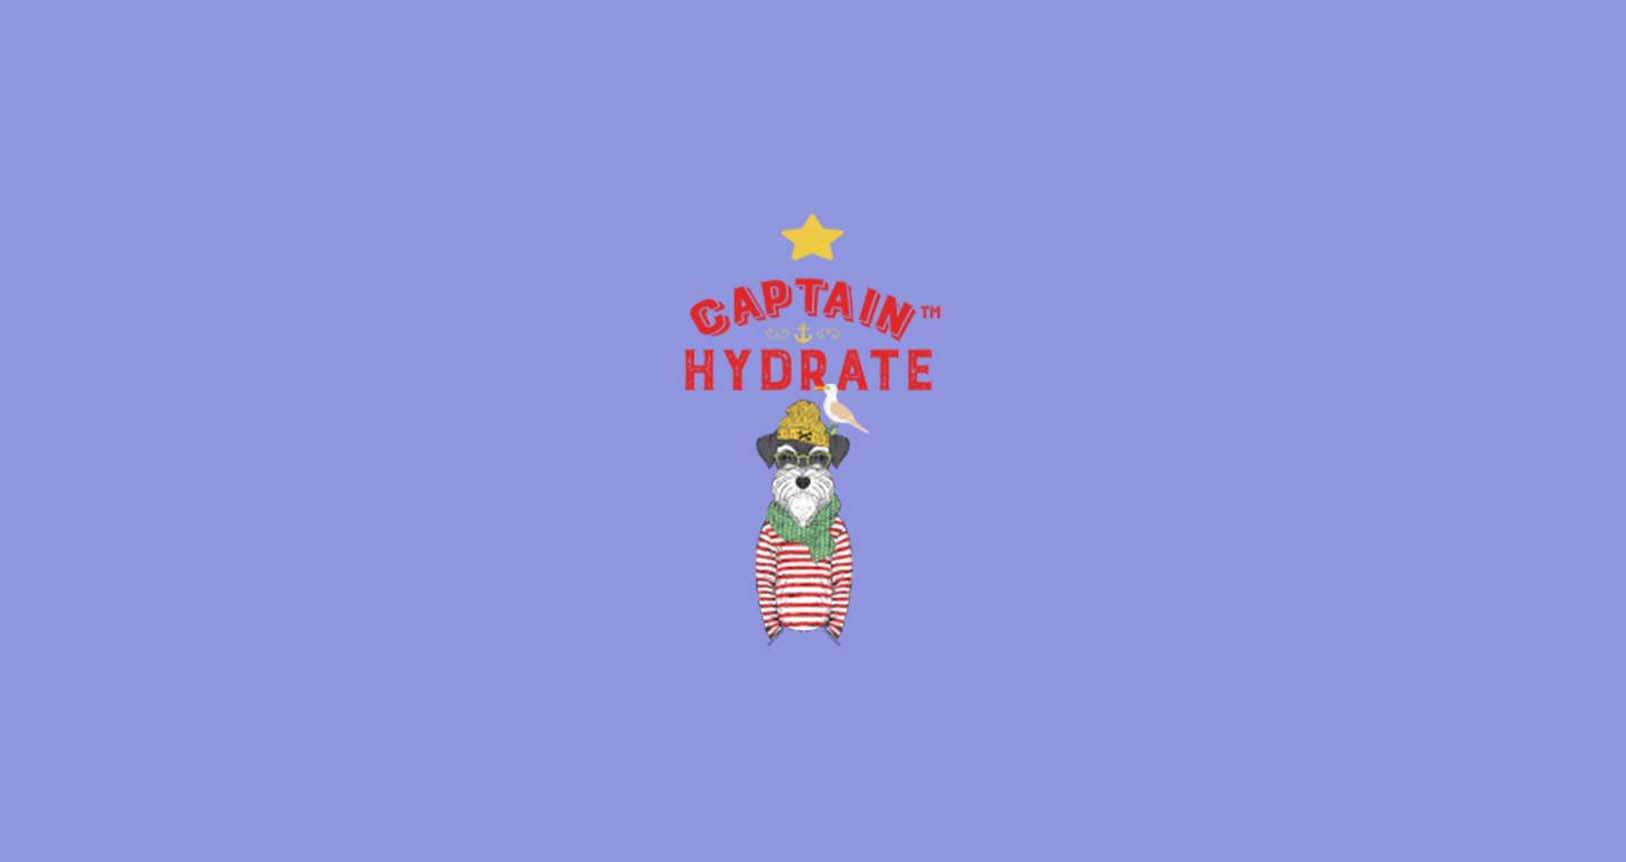 CAPTAIN-HYDRATE-TOP-WIDE-BANNER